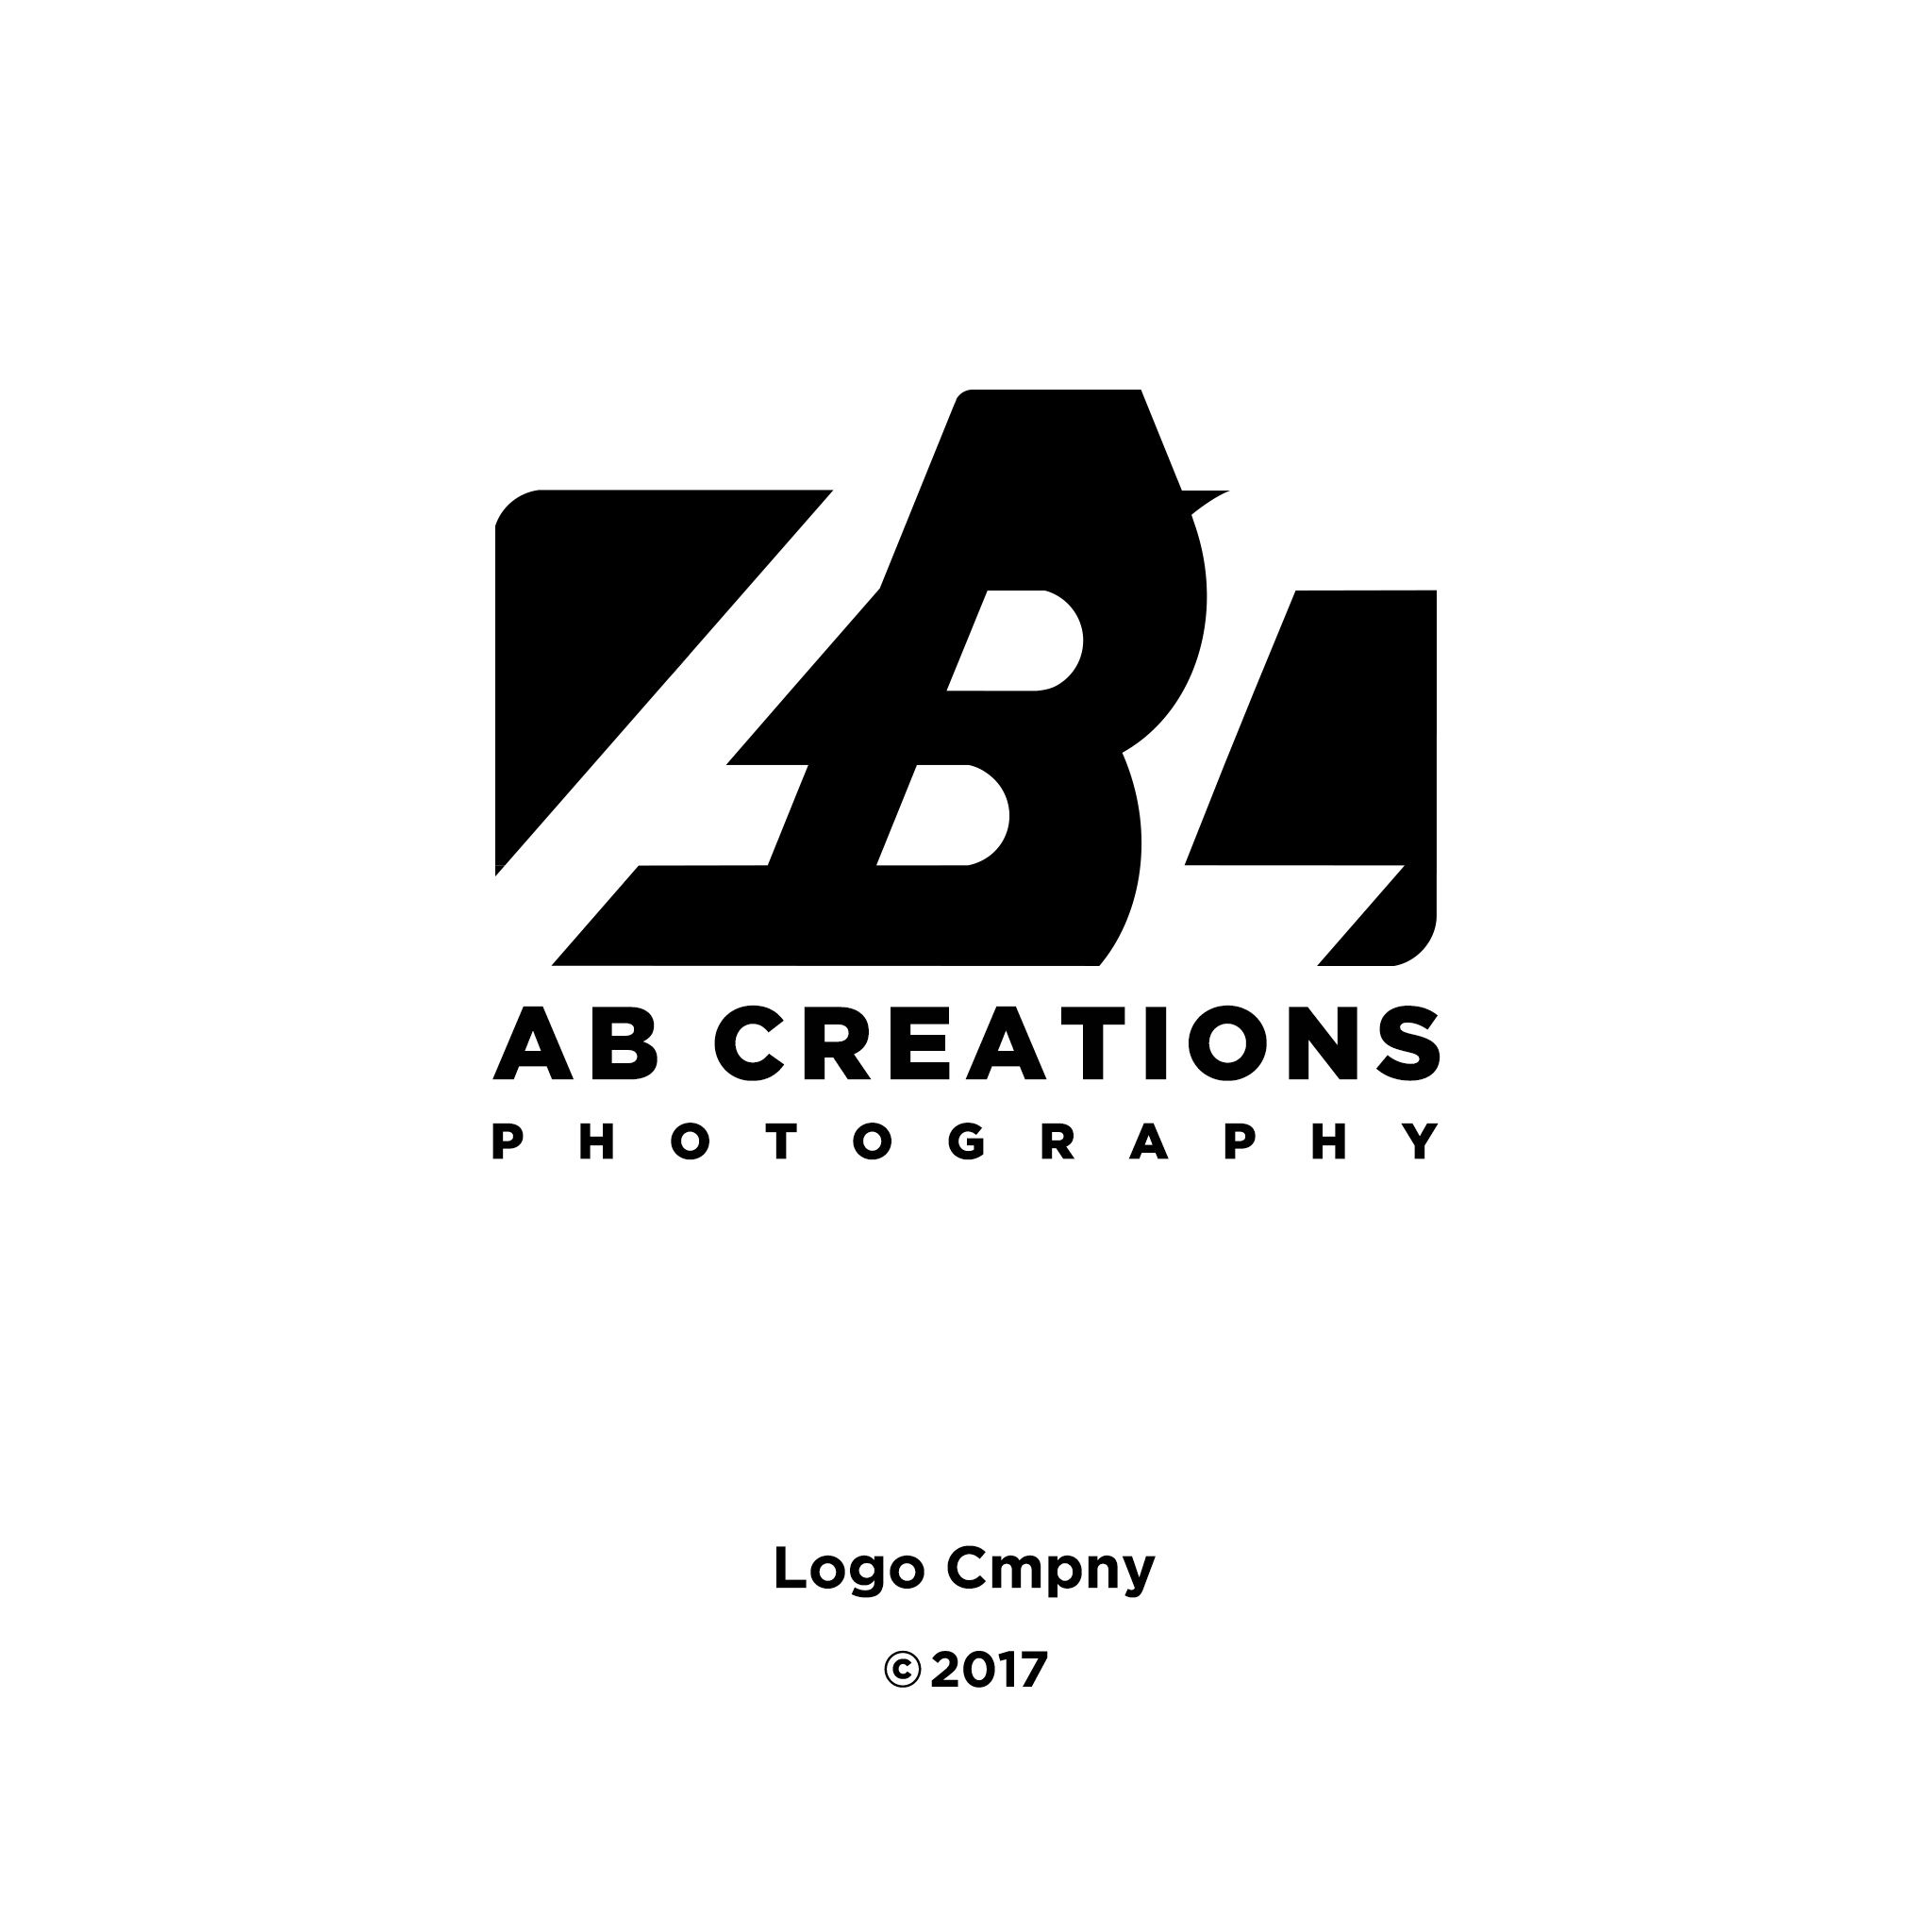 photographylogo negativespace Photography logos, Logos